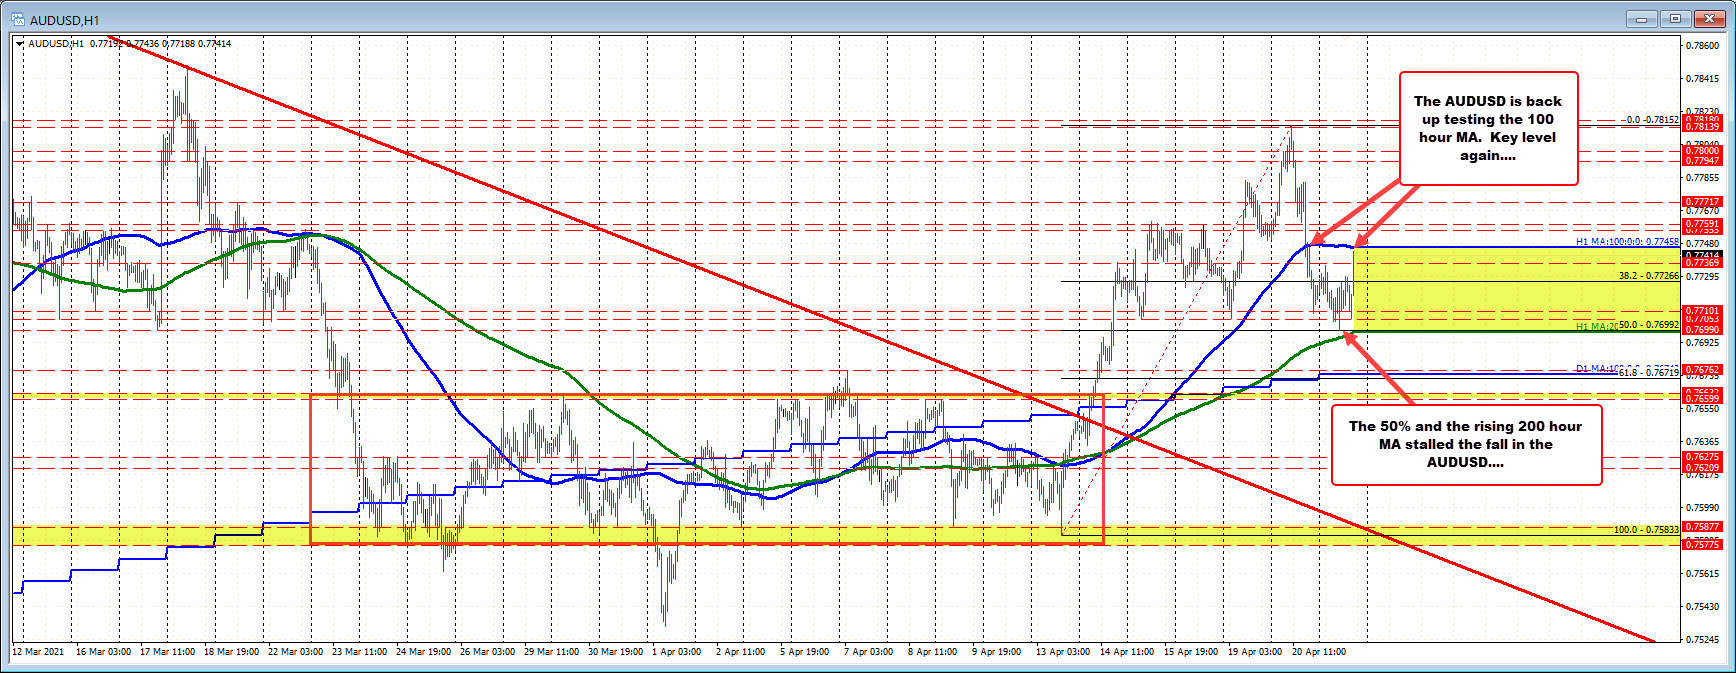 200 hour MA and 50% retracement stalled the fall